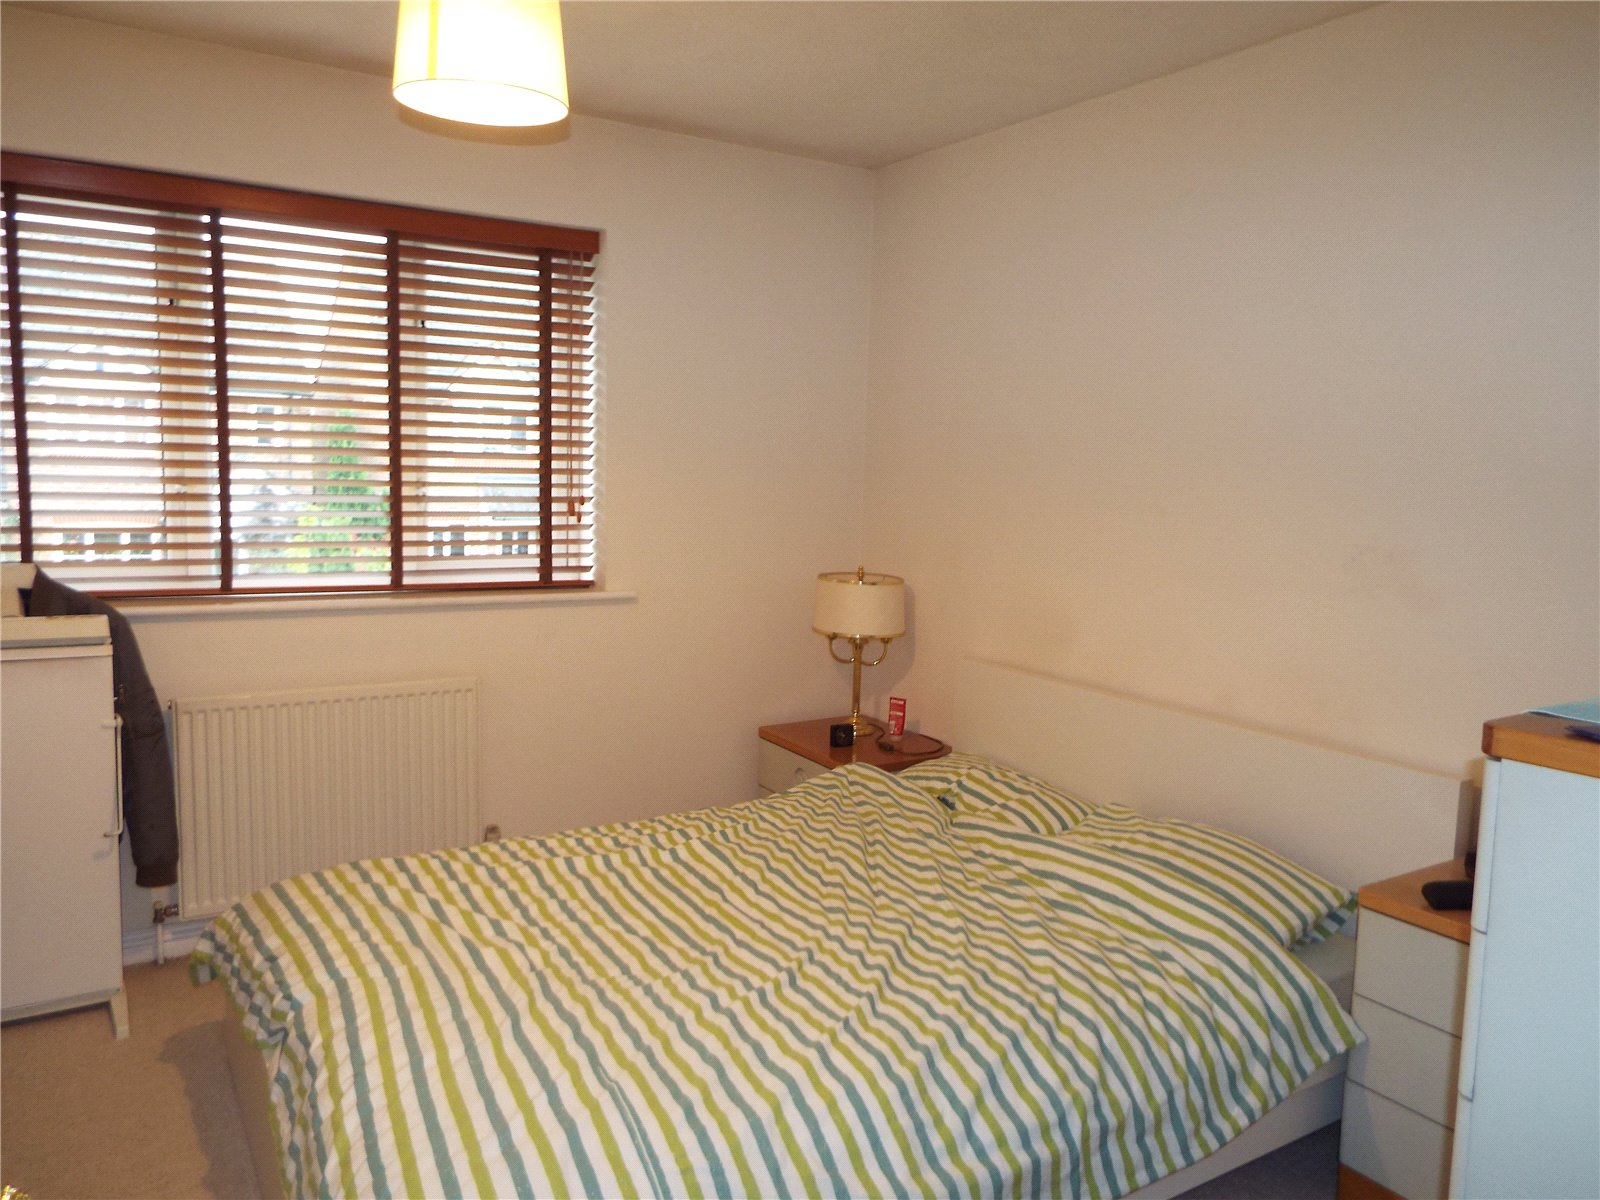 2 bed house to rent in New Southgate, N11 3PY 4